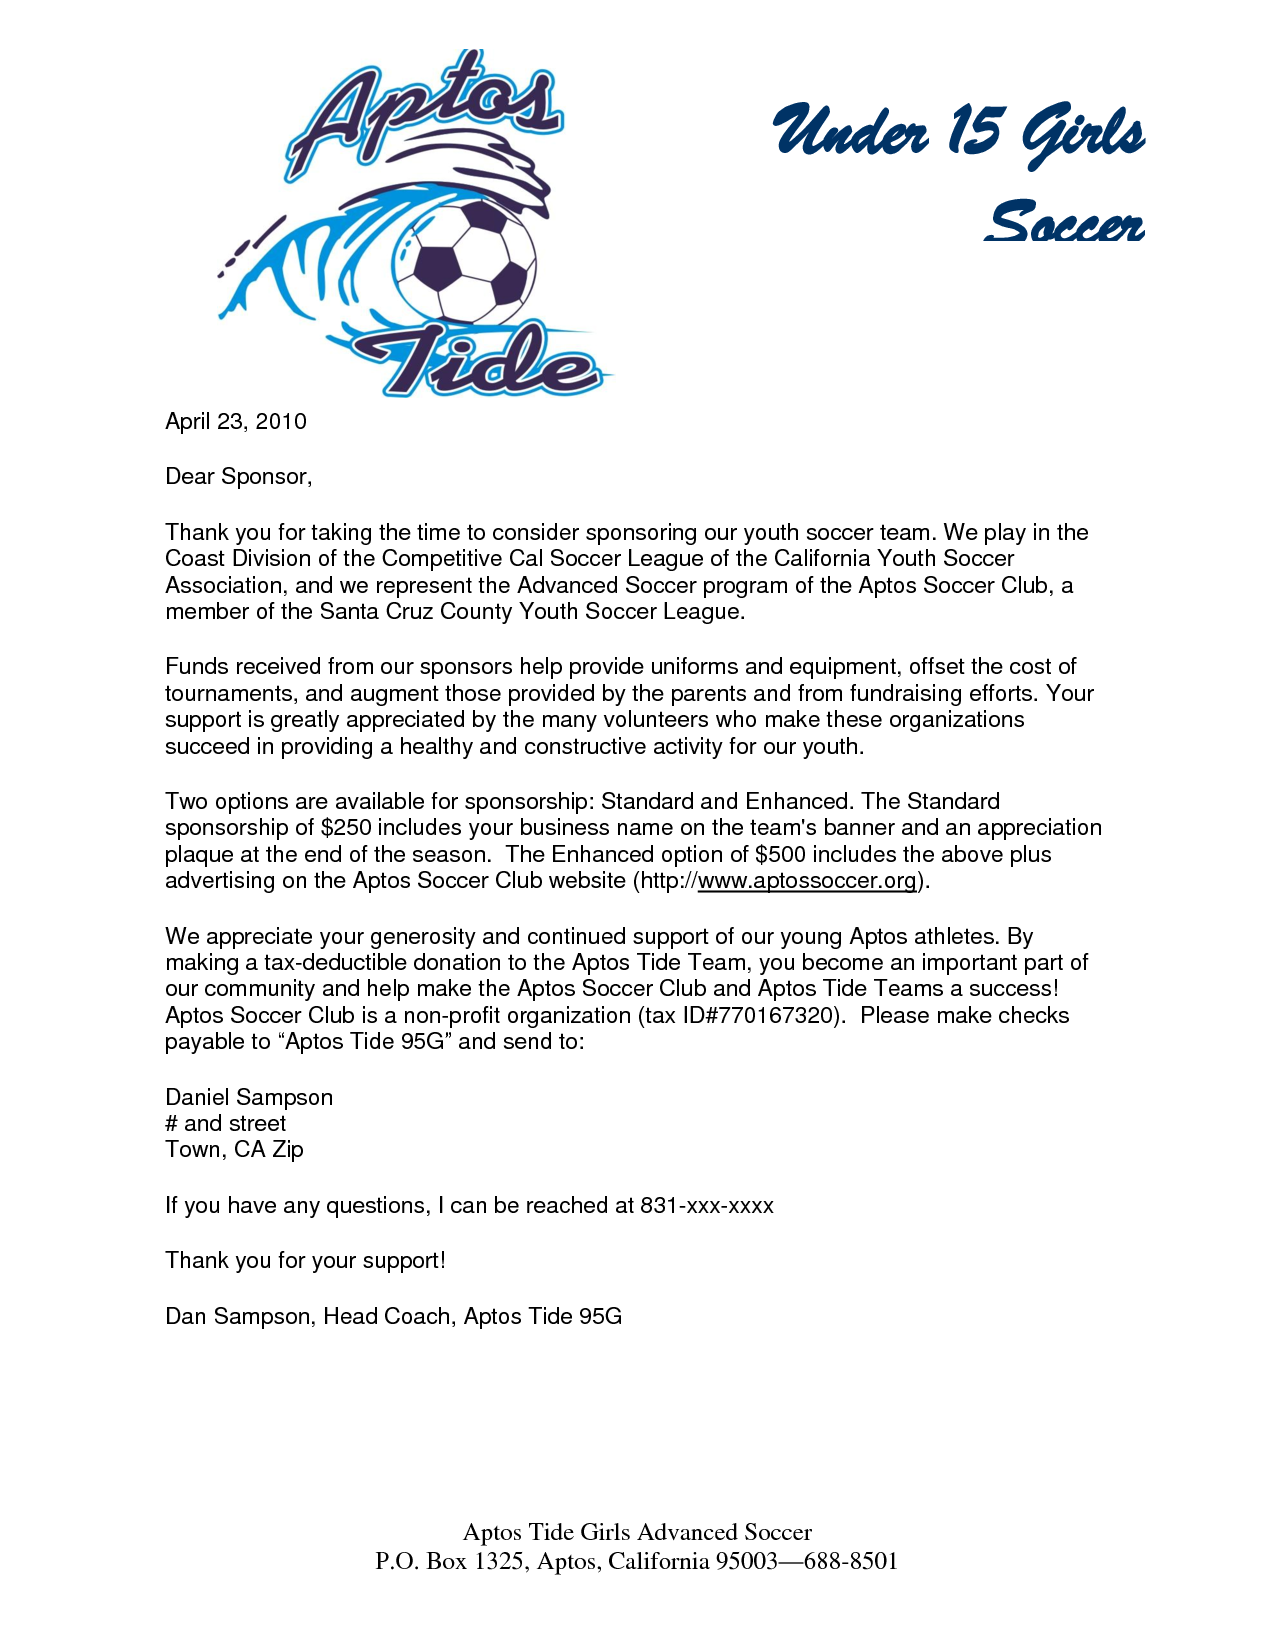 parent thank you letter from youth athletes – Sample of a Sponsorship Letter